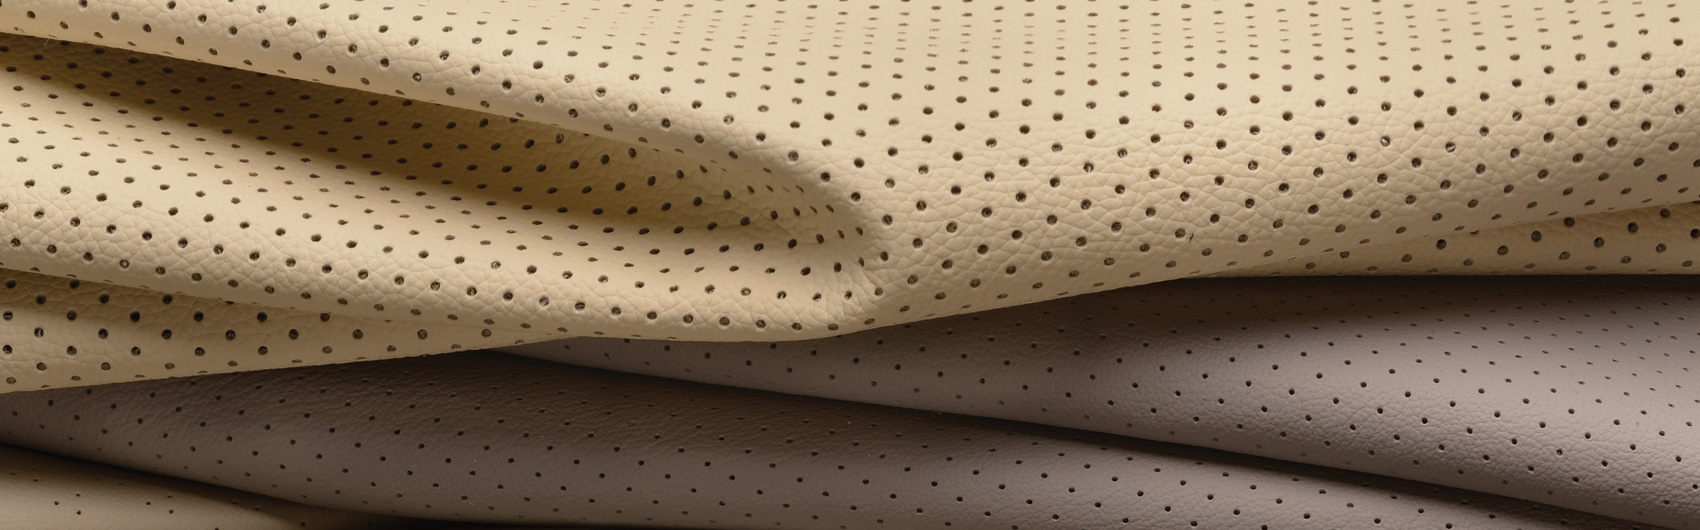 Perforated